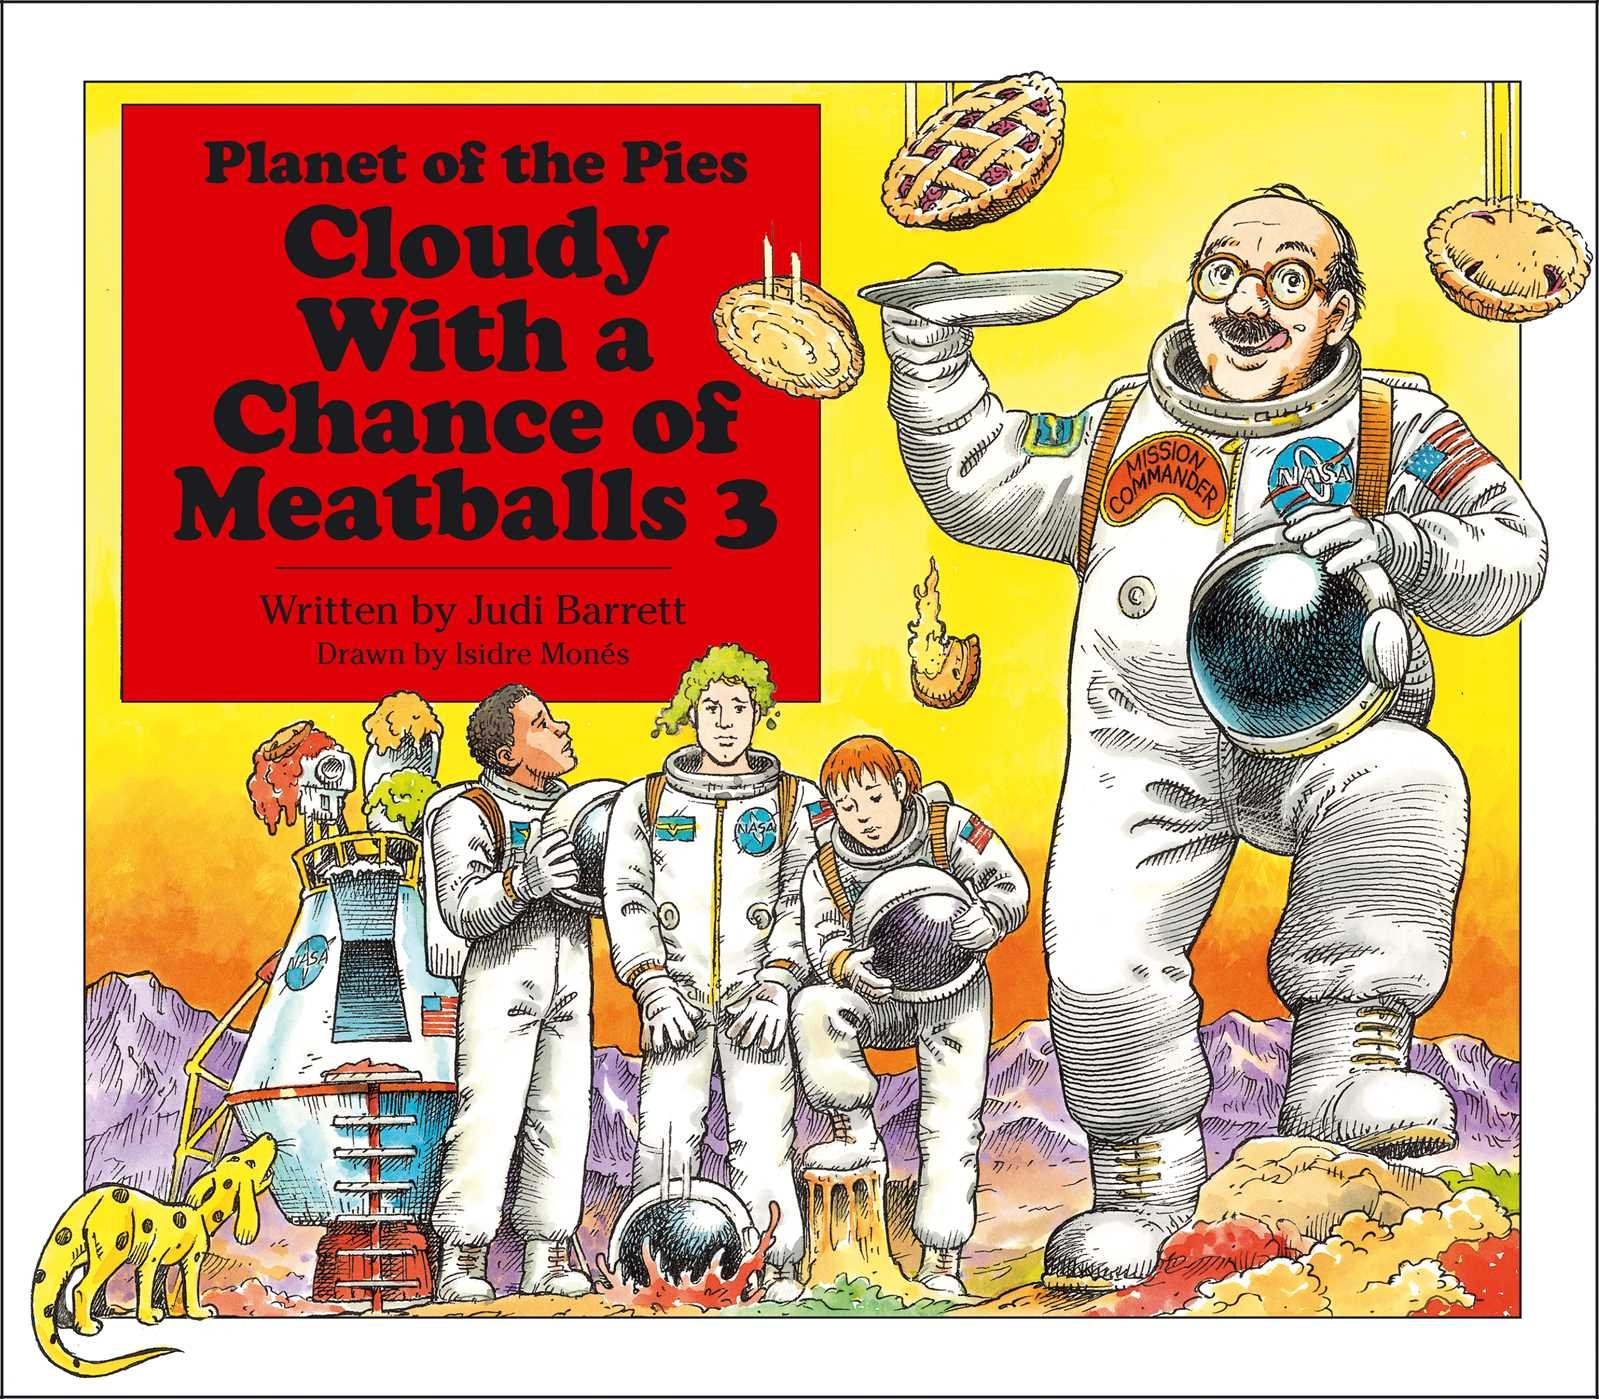 cloudy with a chance of meatballs 3 planet of the pies amazon co